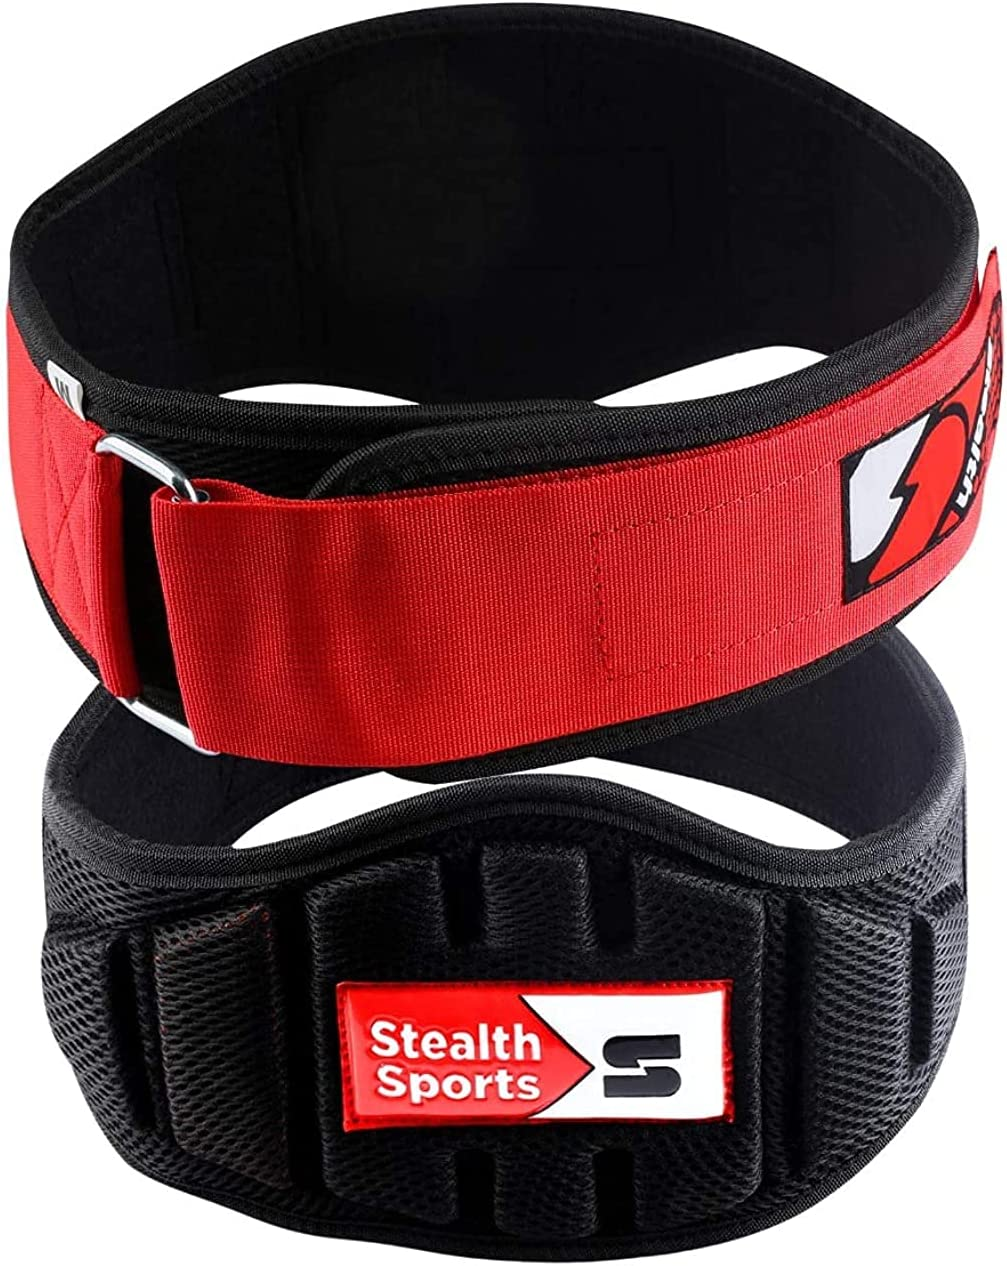 Gym Belt for Men and Women Maximum Support and Increased Performance Double Tone 6-inch Weightlifting Belt Stealth Sports Weight Lifting Belt Premium Neoprene Back Support Belt